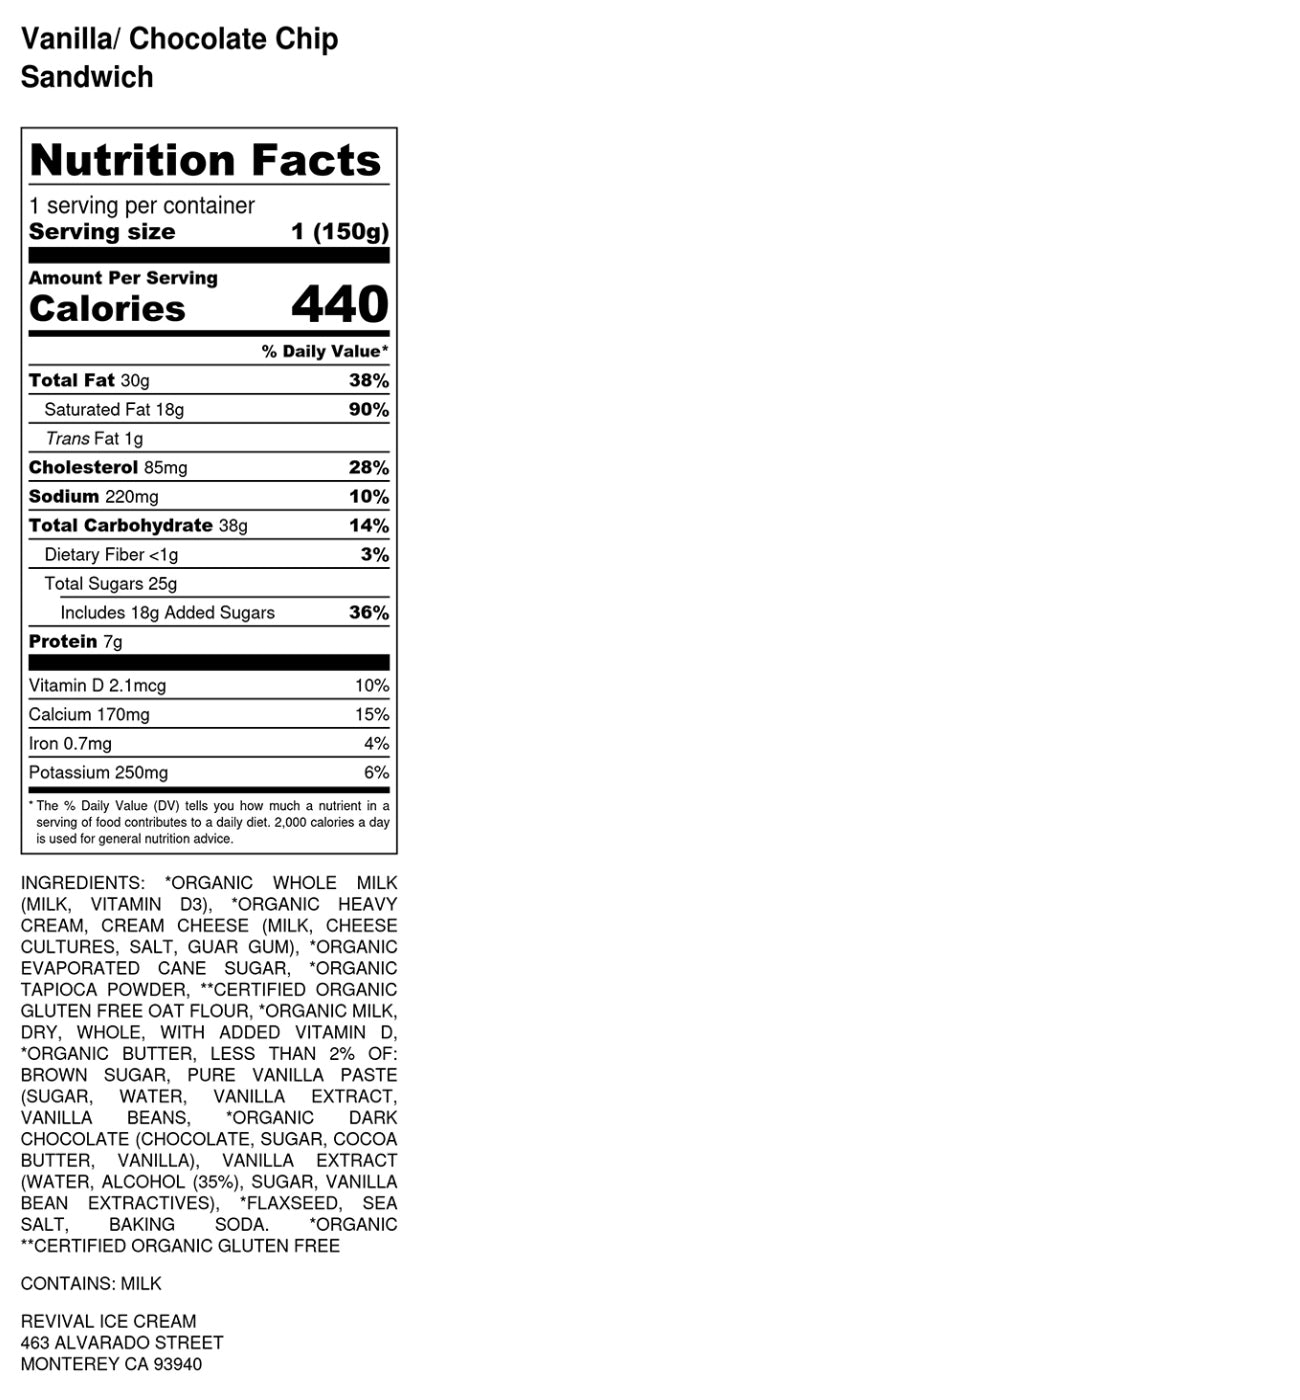 vanilla chocolate chip sandwich nutritional info revival ice cream